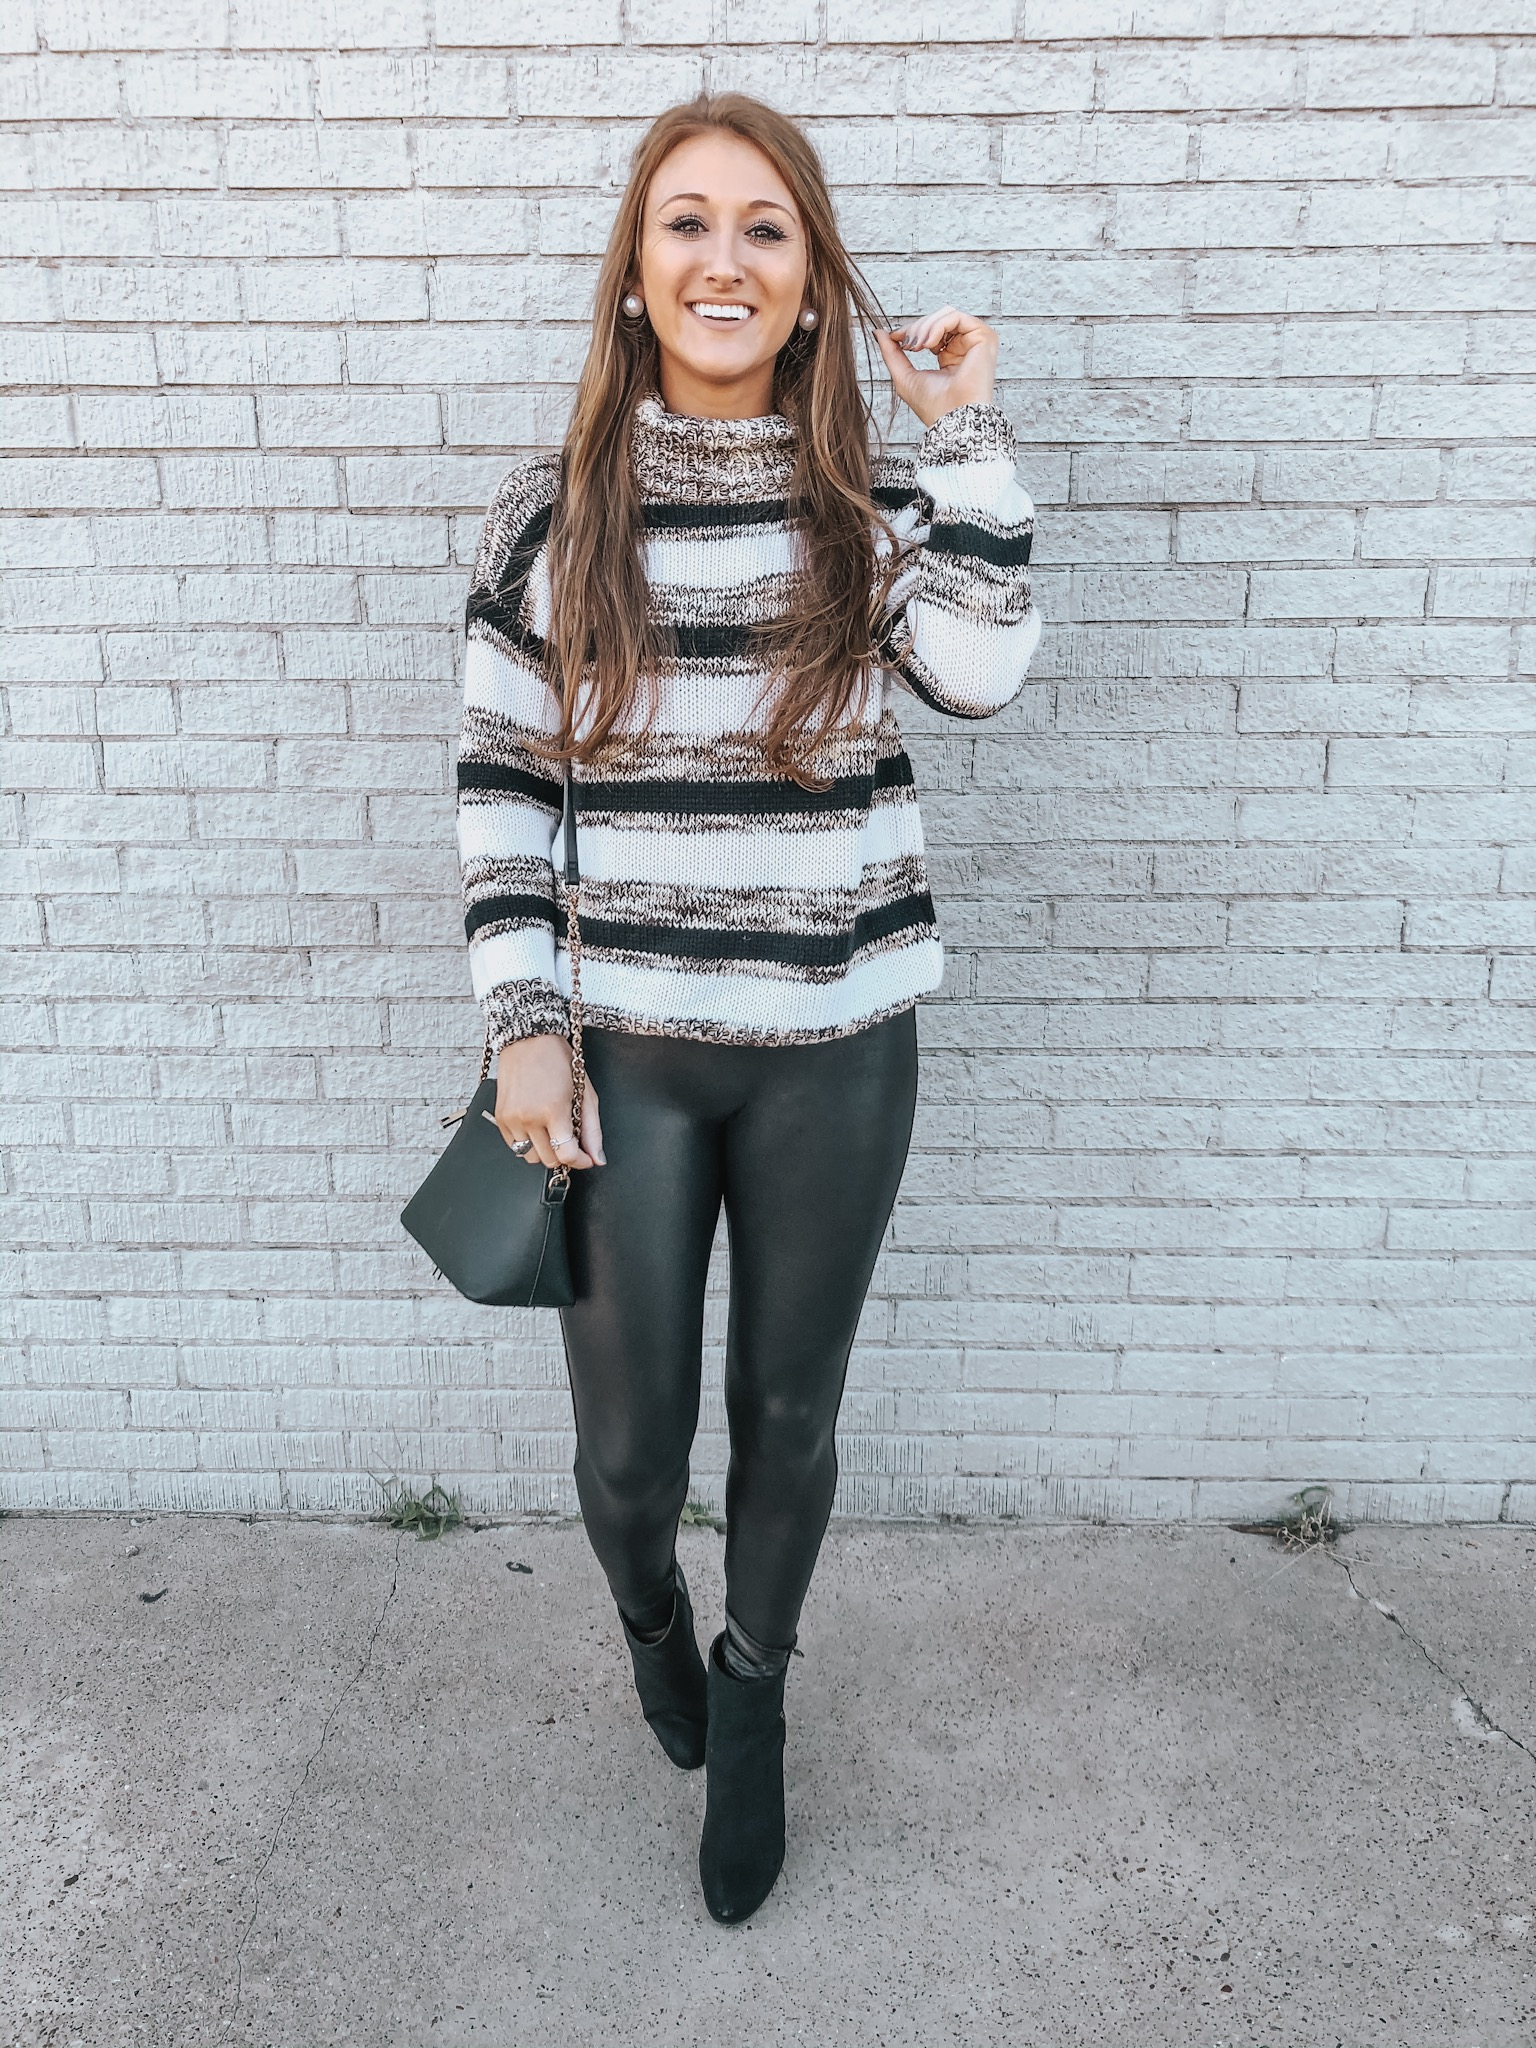 Carrington of Chaos and Coffee in a colorblock sweater, Spanx faux leather leggings and black booties